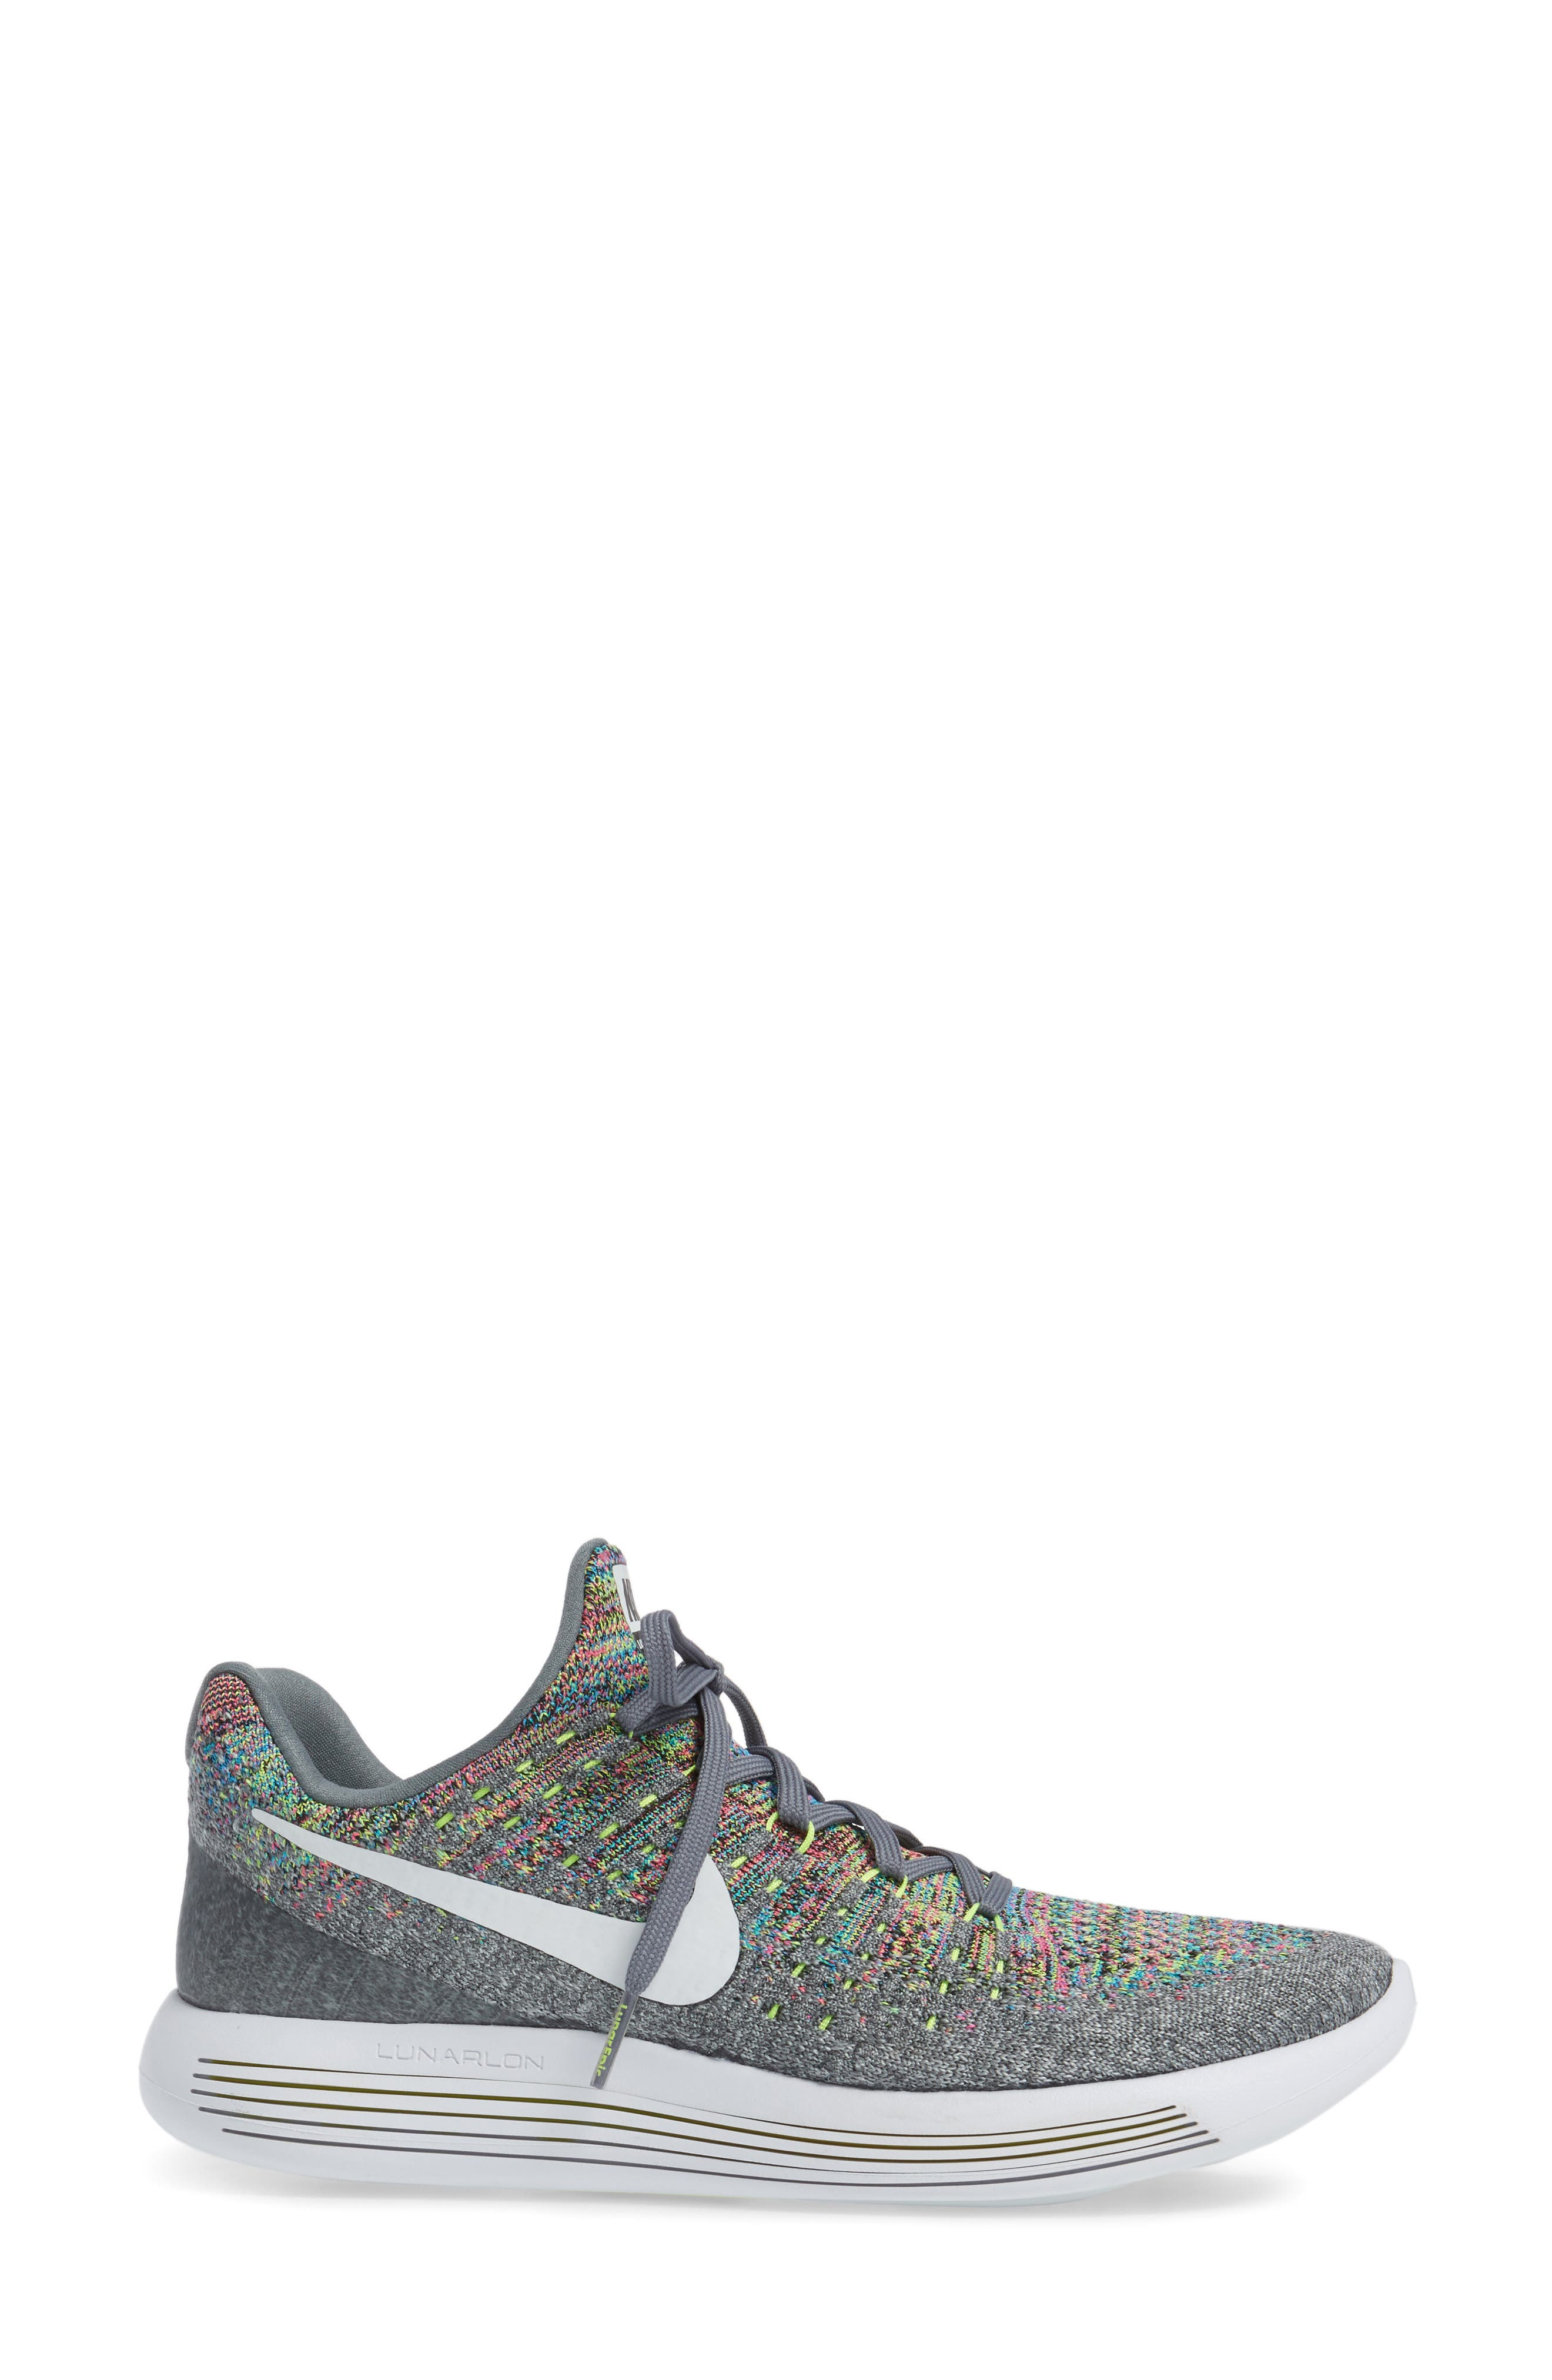 ,                             LunarEpic Low Flyknit 2 Running Shoe,                             Alternate thumbnail 33, color,                             023